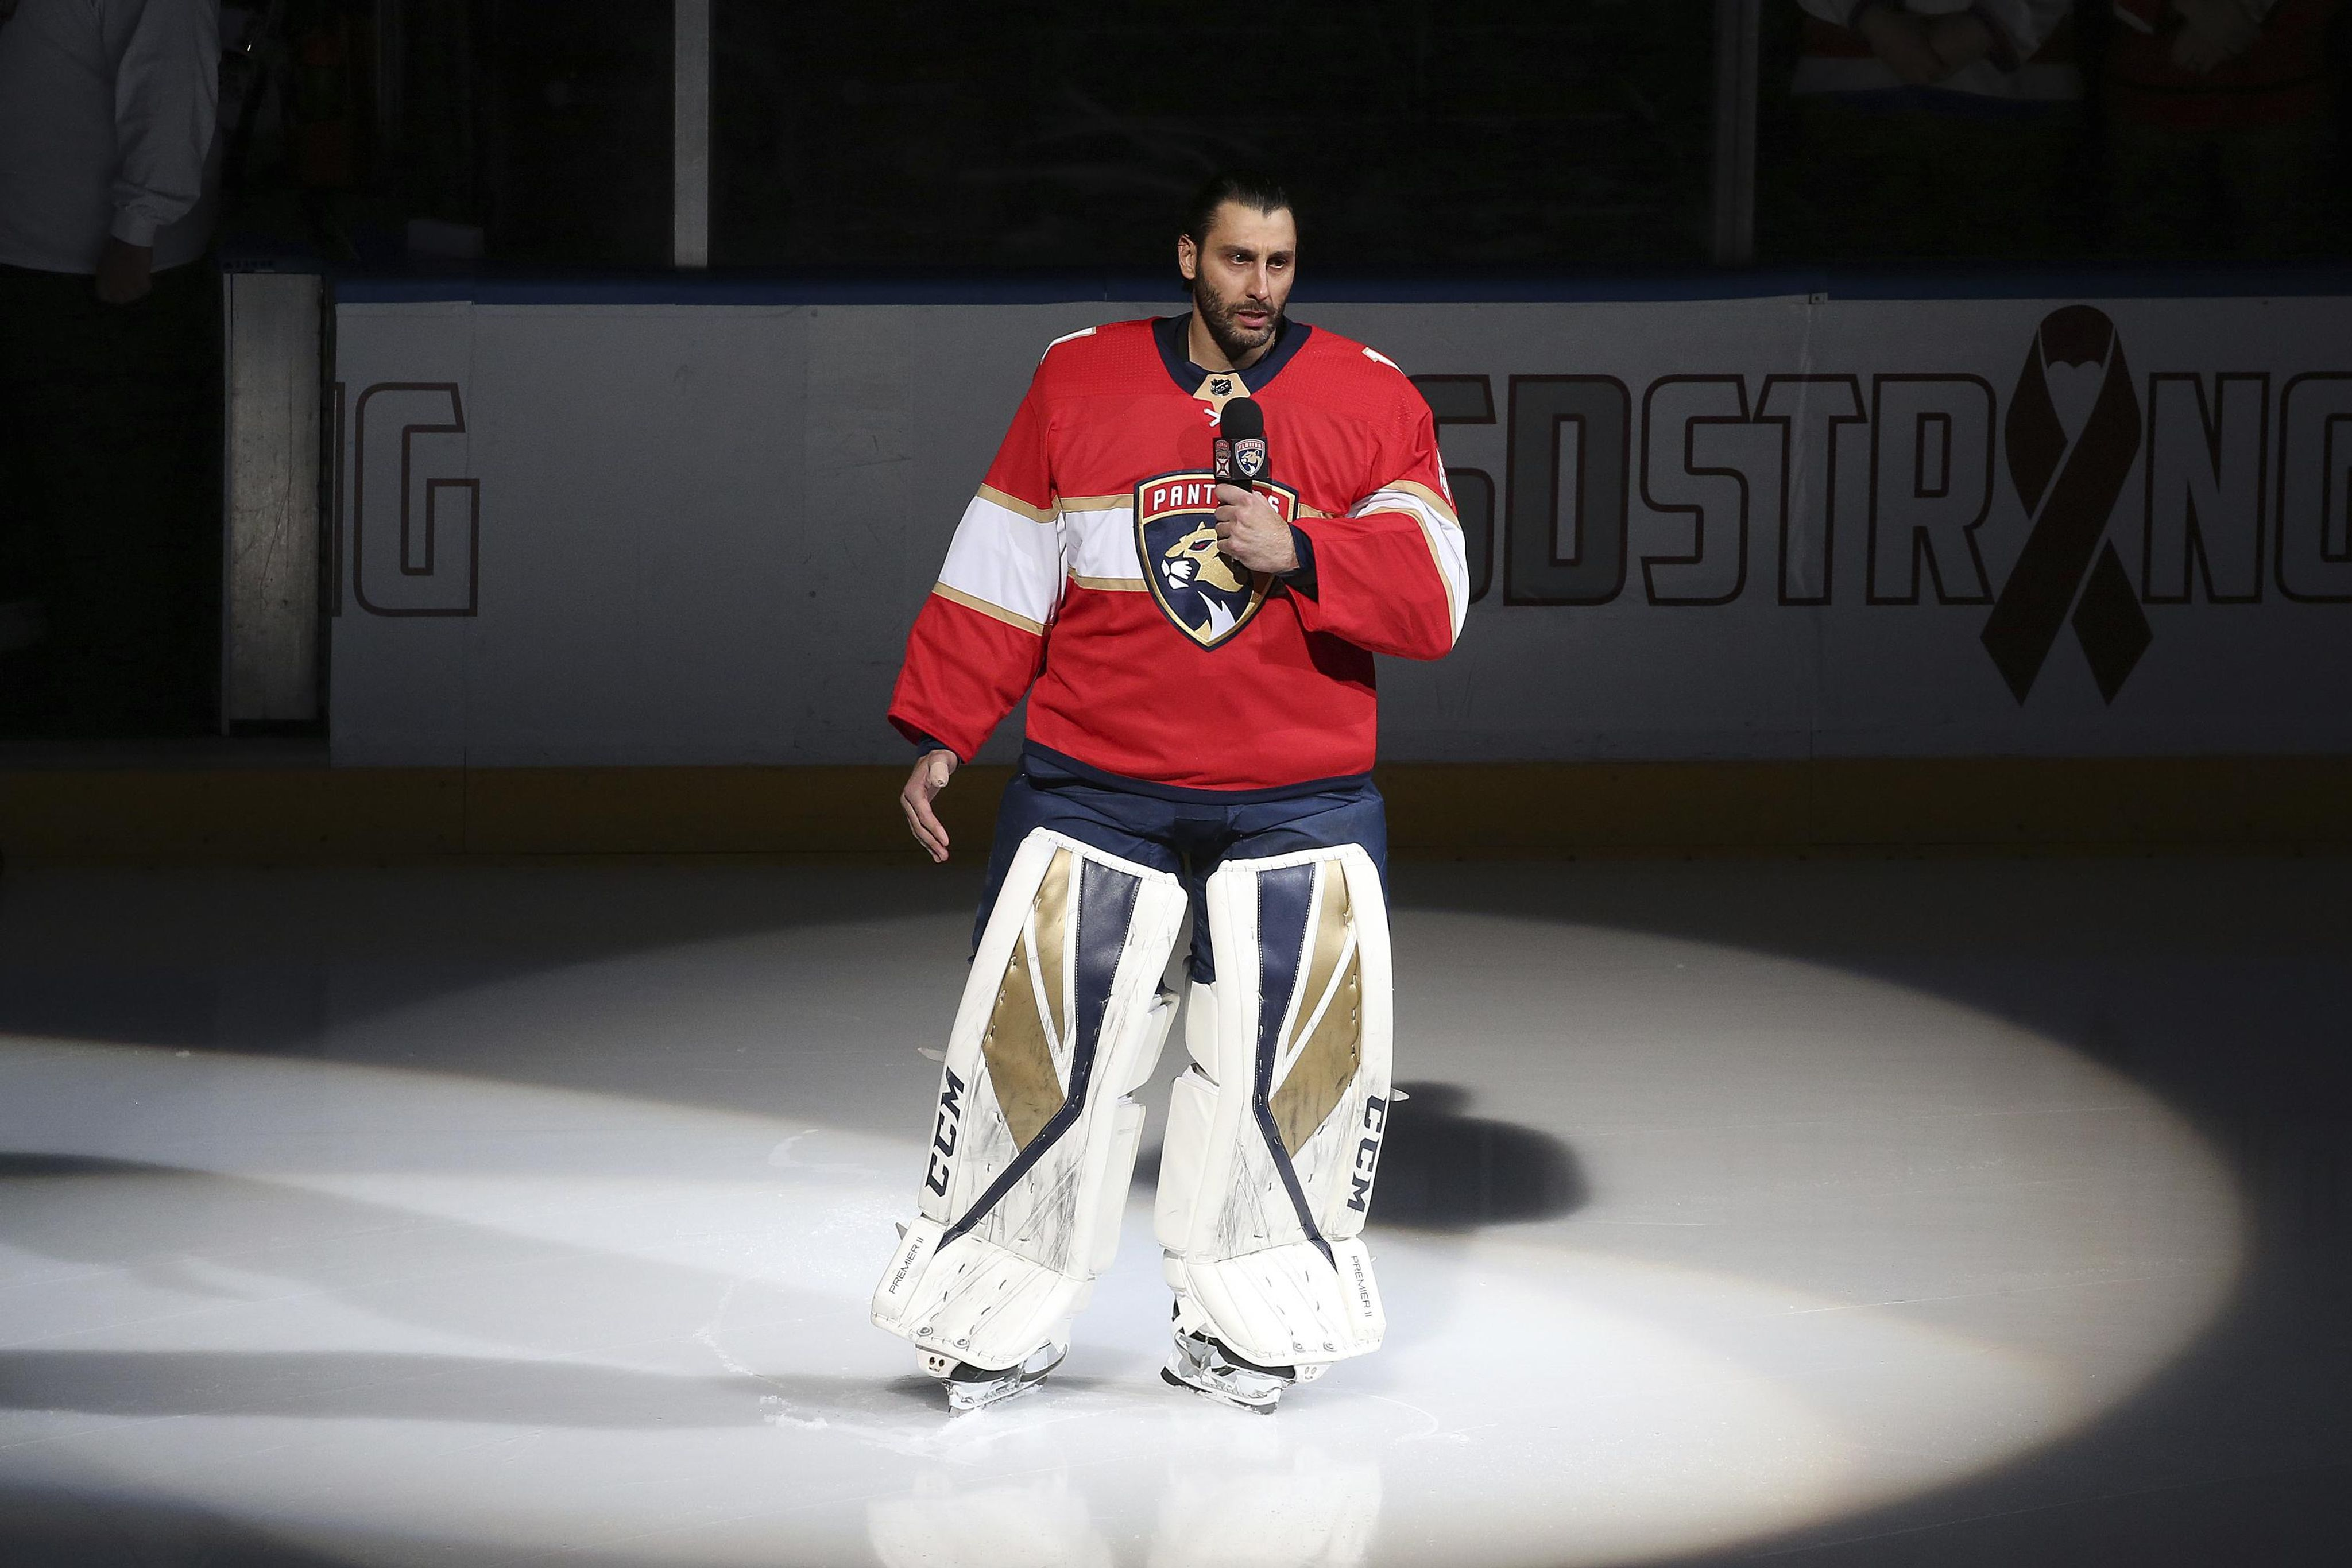 Capitals_panthers_hockey_school_shootings_05251_s4096x2731